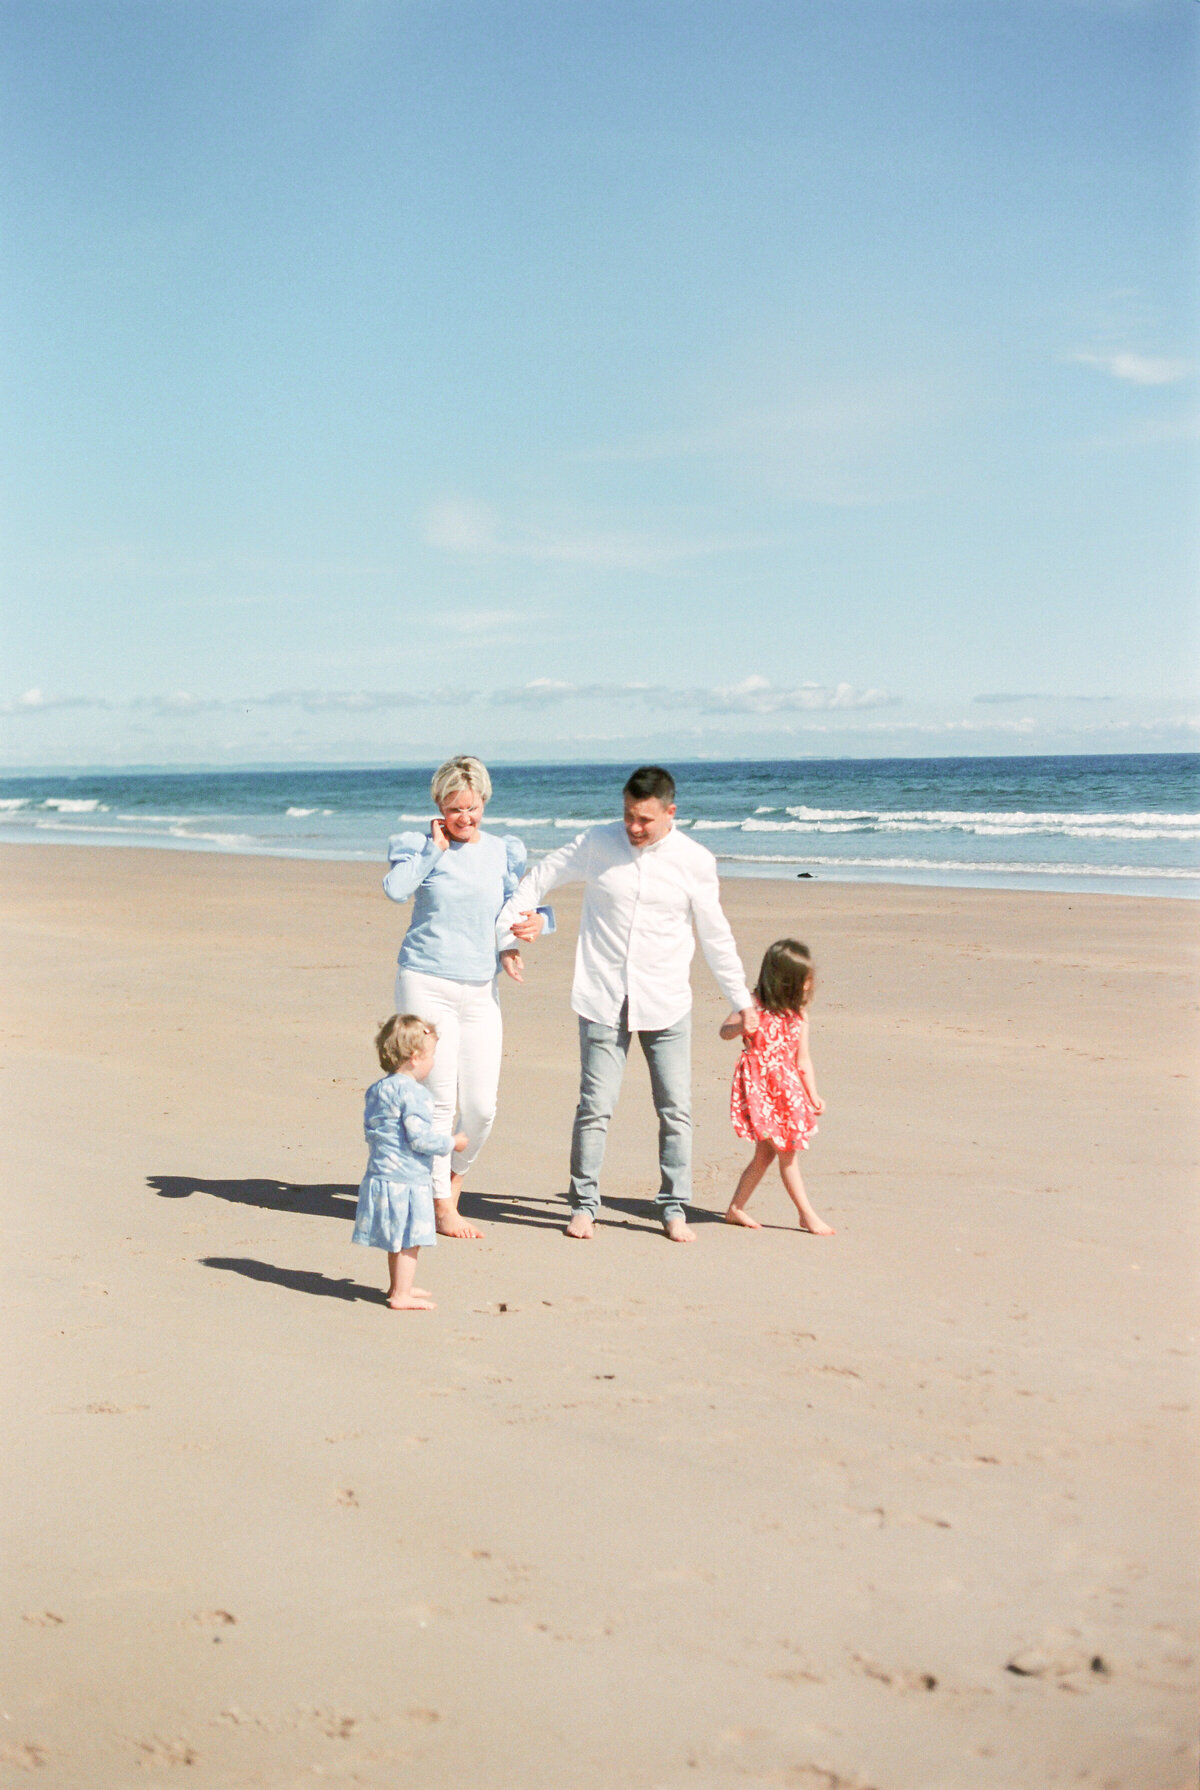 JacquelineAnnePhotography-Christie Family at Tyninghame -94